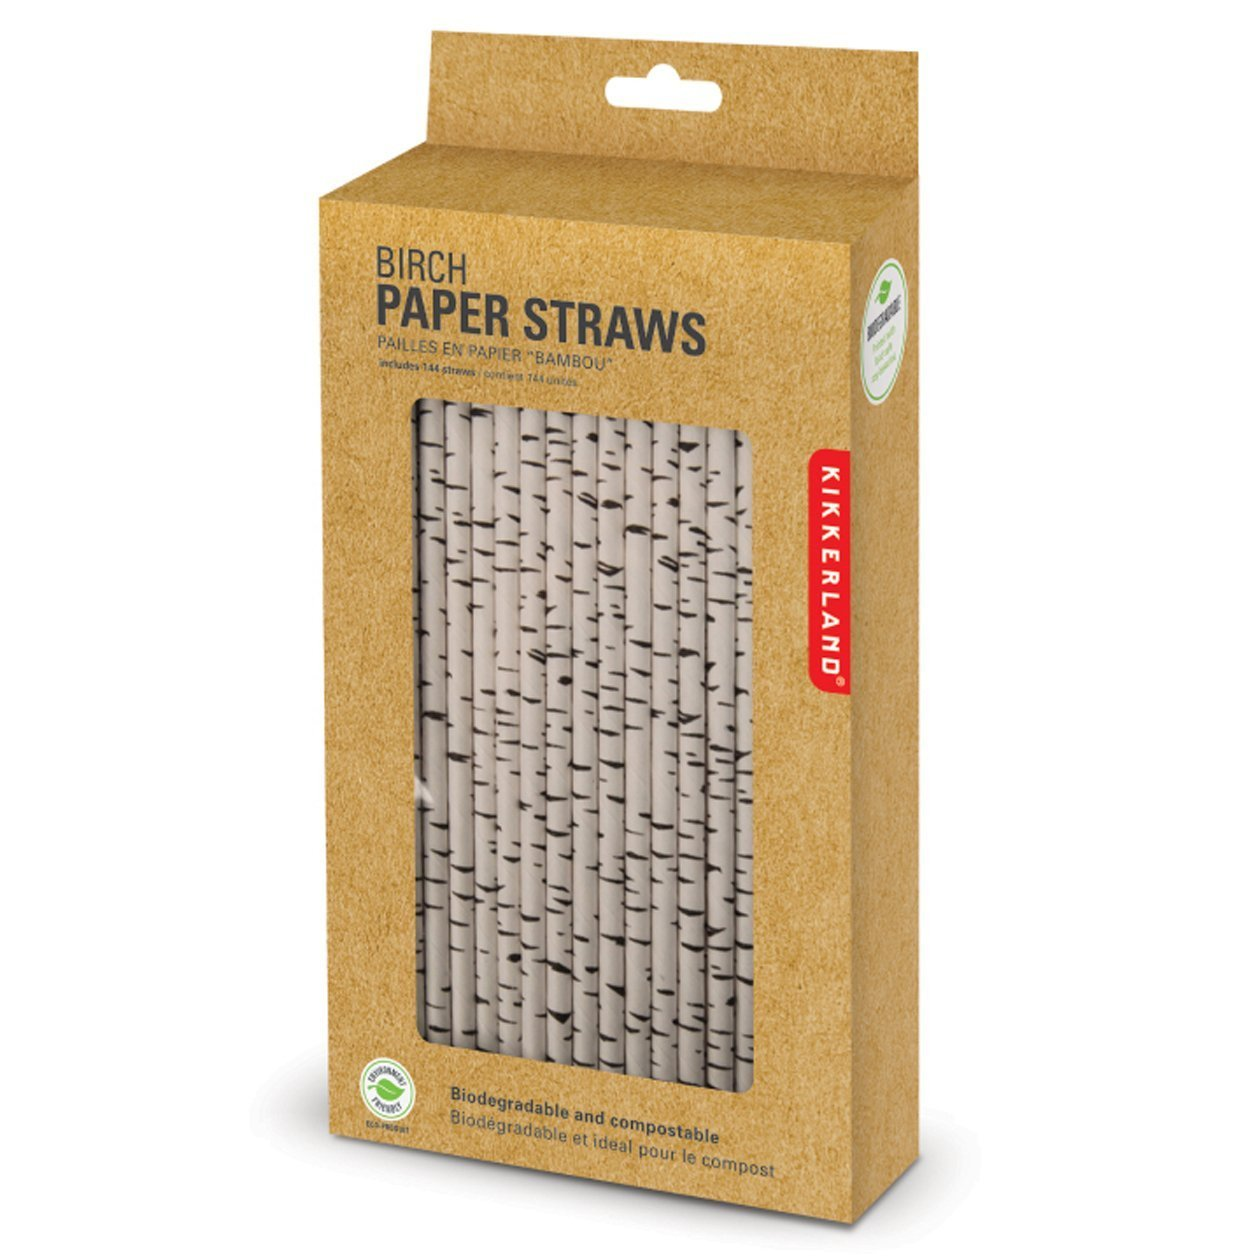 kikkerland biodegradable paper straws birch box of  amazon  - kikkerland biodegradable paper straws birch box of  amazonca home kitchen